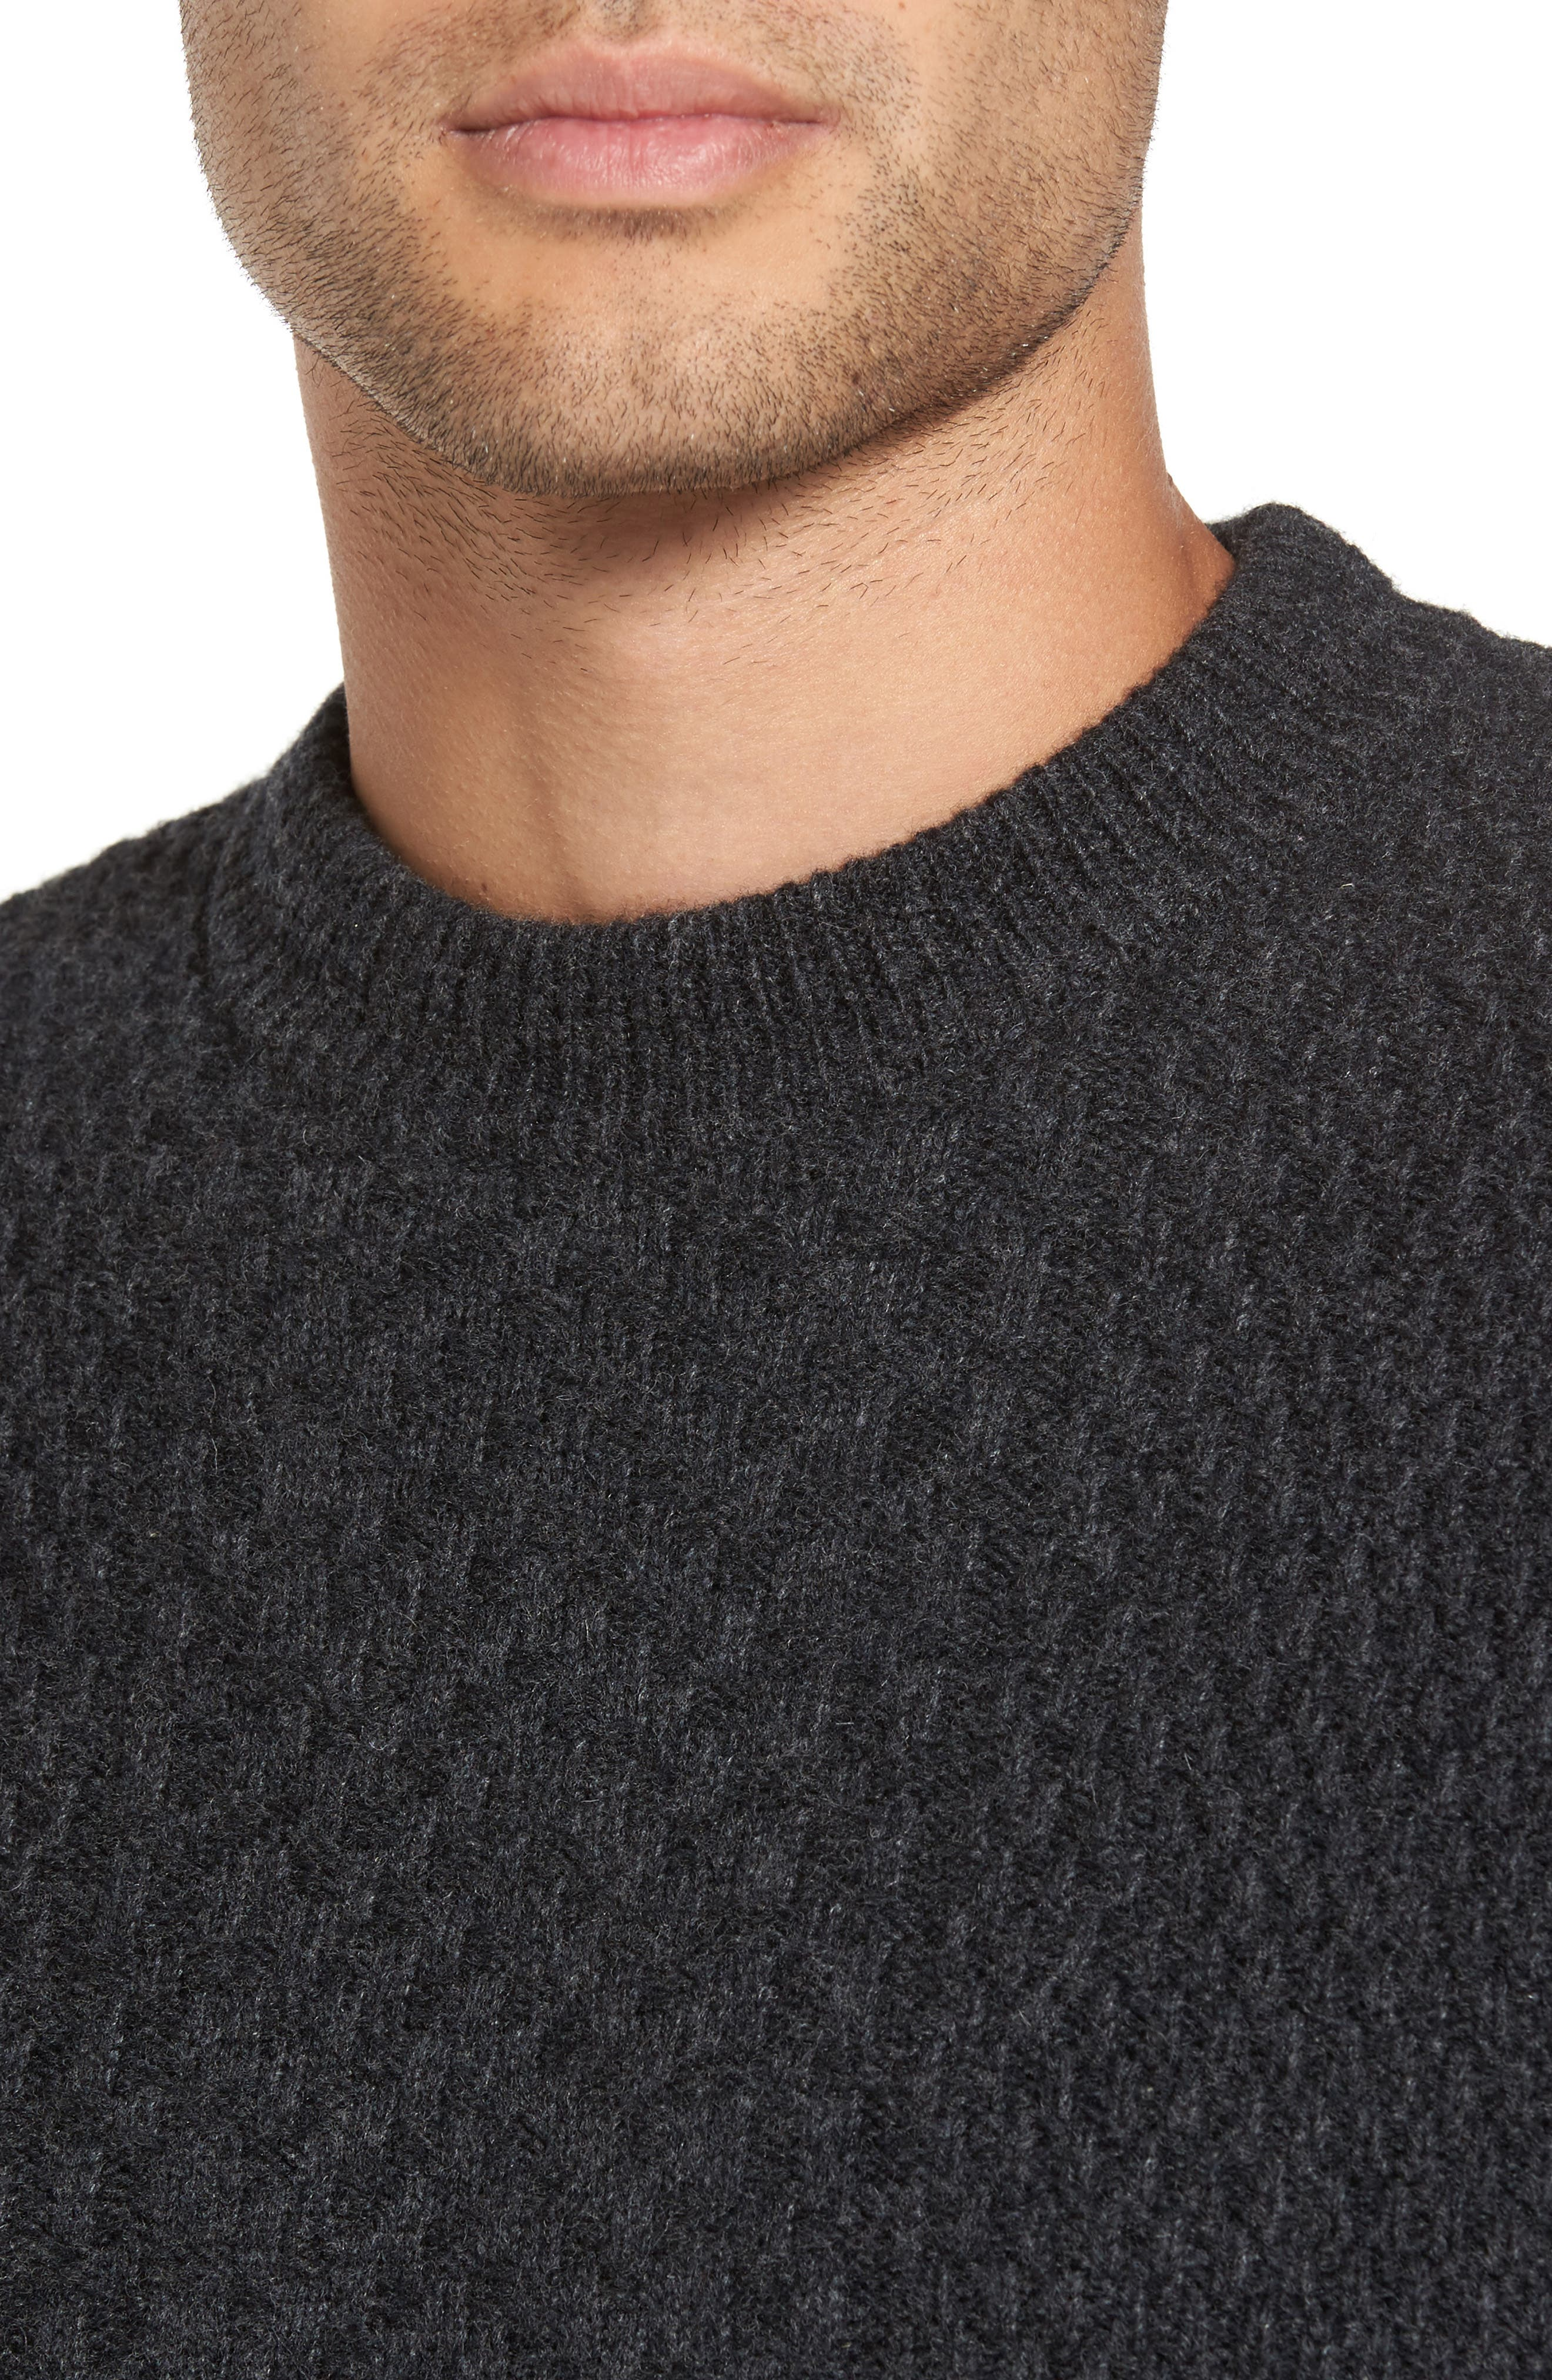 Wool Crewneck Sweater,                             Alternate thumbnail 4, color,                             Charcoal